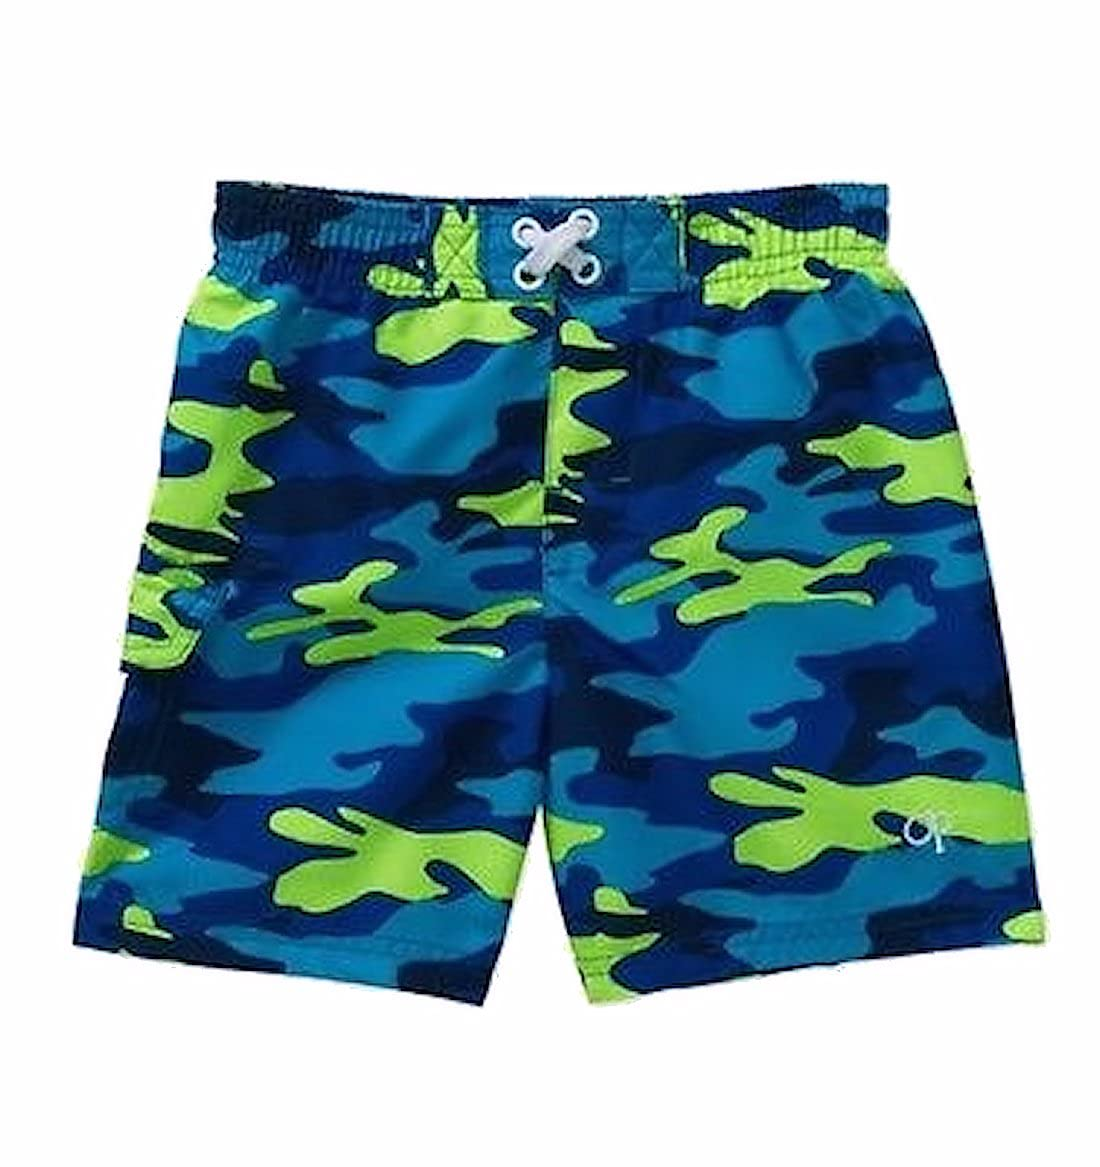 3c9526bcfa Amazon.com: OP Baby Boy Printed Swim Trunks Blue and Green Camo Camouflage  (3-6 Months): Clothing